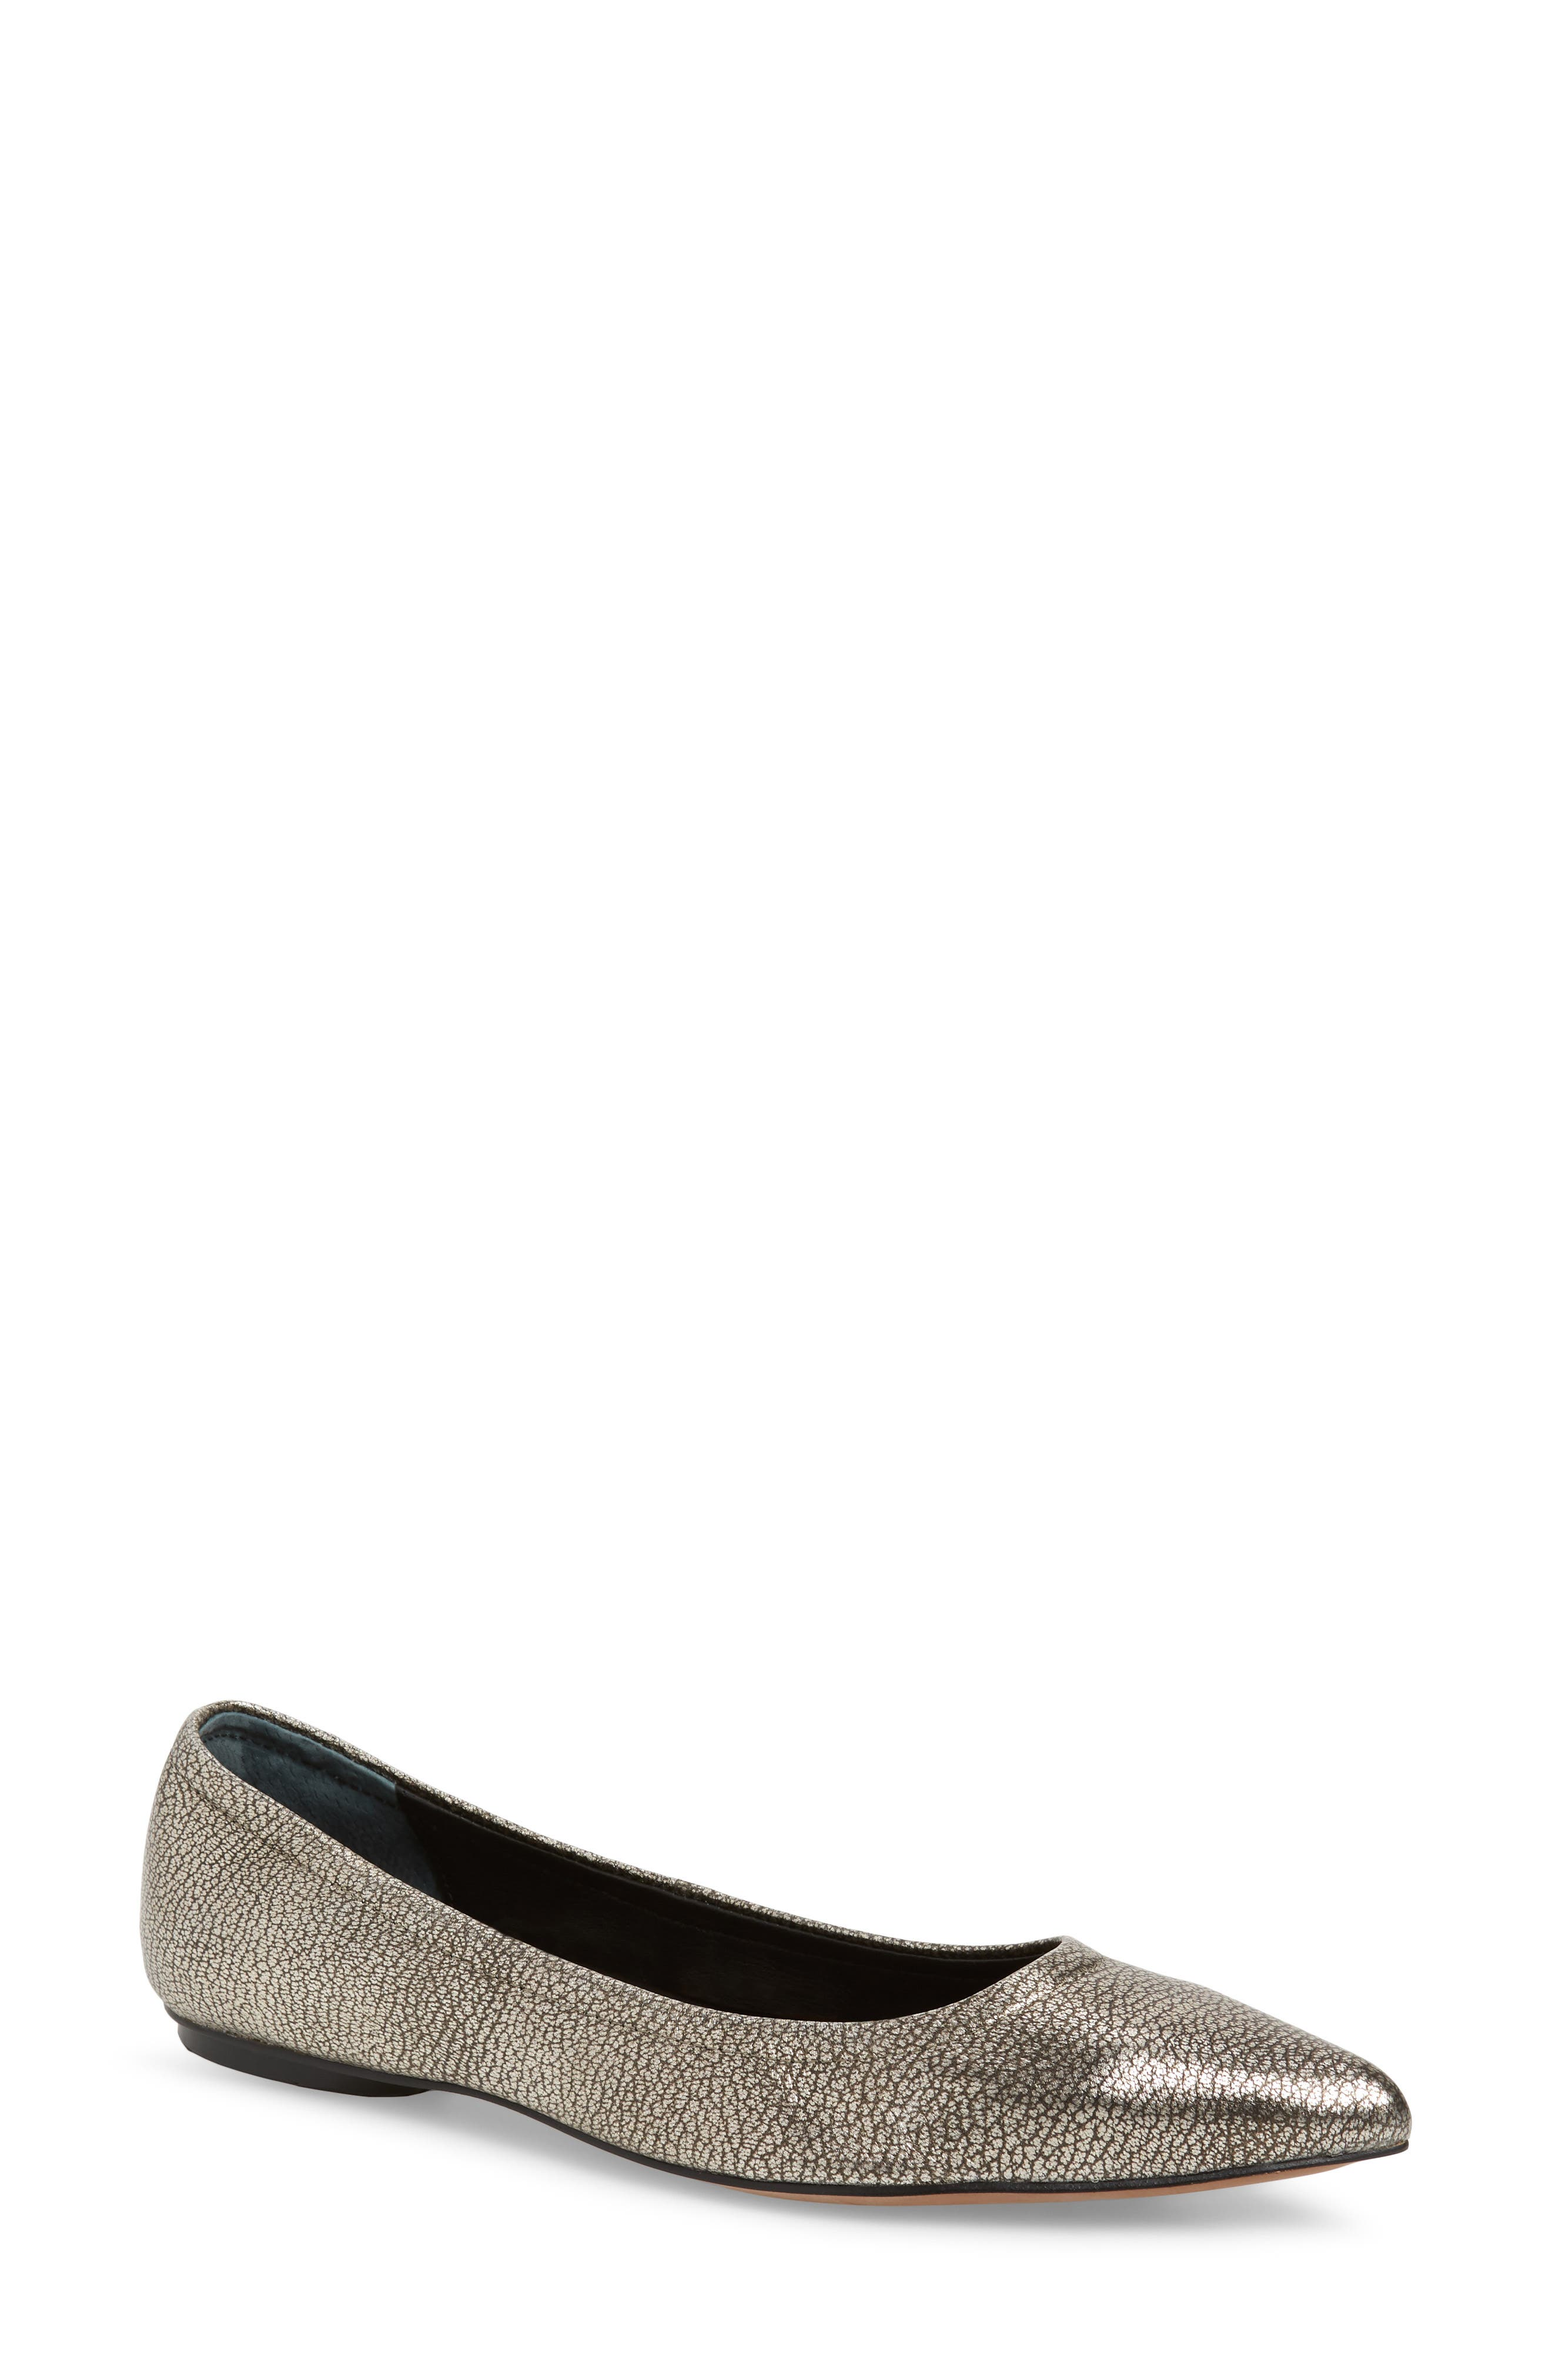 Nico Pointy Toe Flat,                             Main thumbnail 1, color,                             ANTHRACITE LEATHER